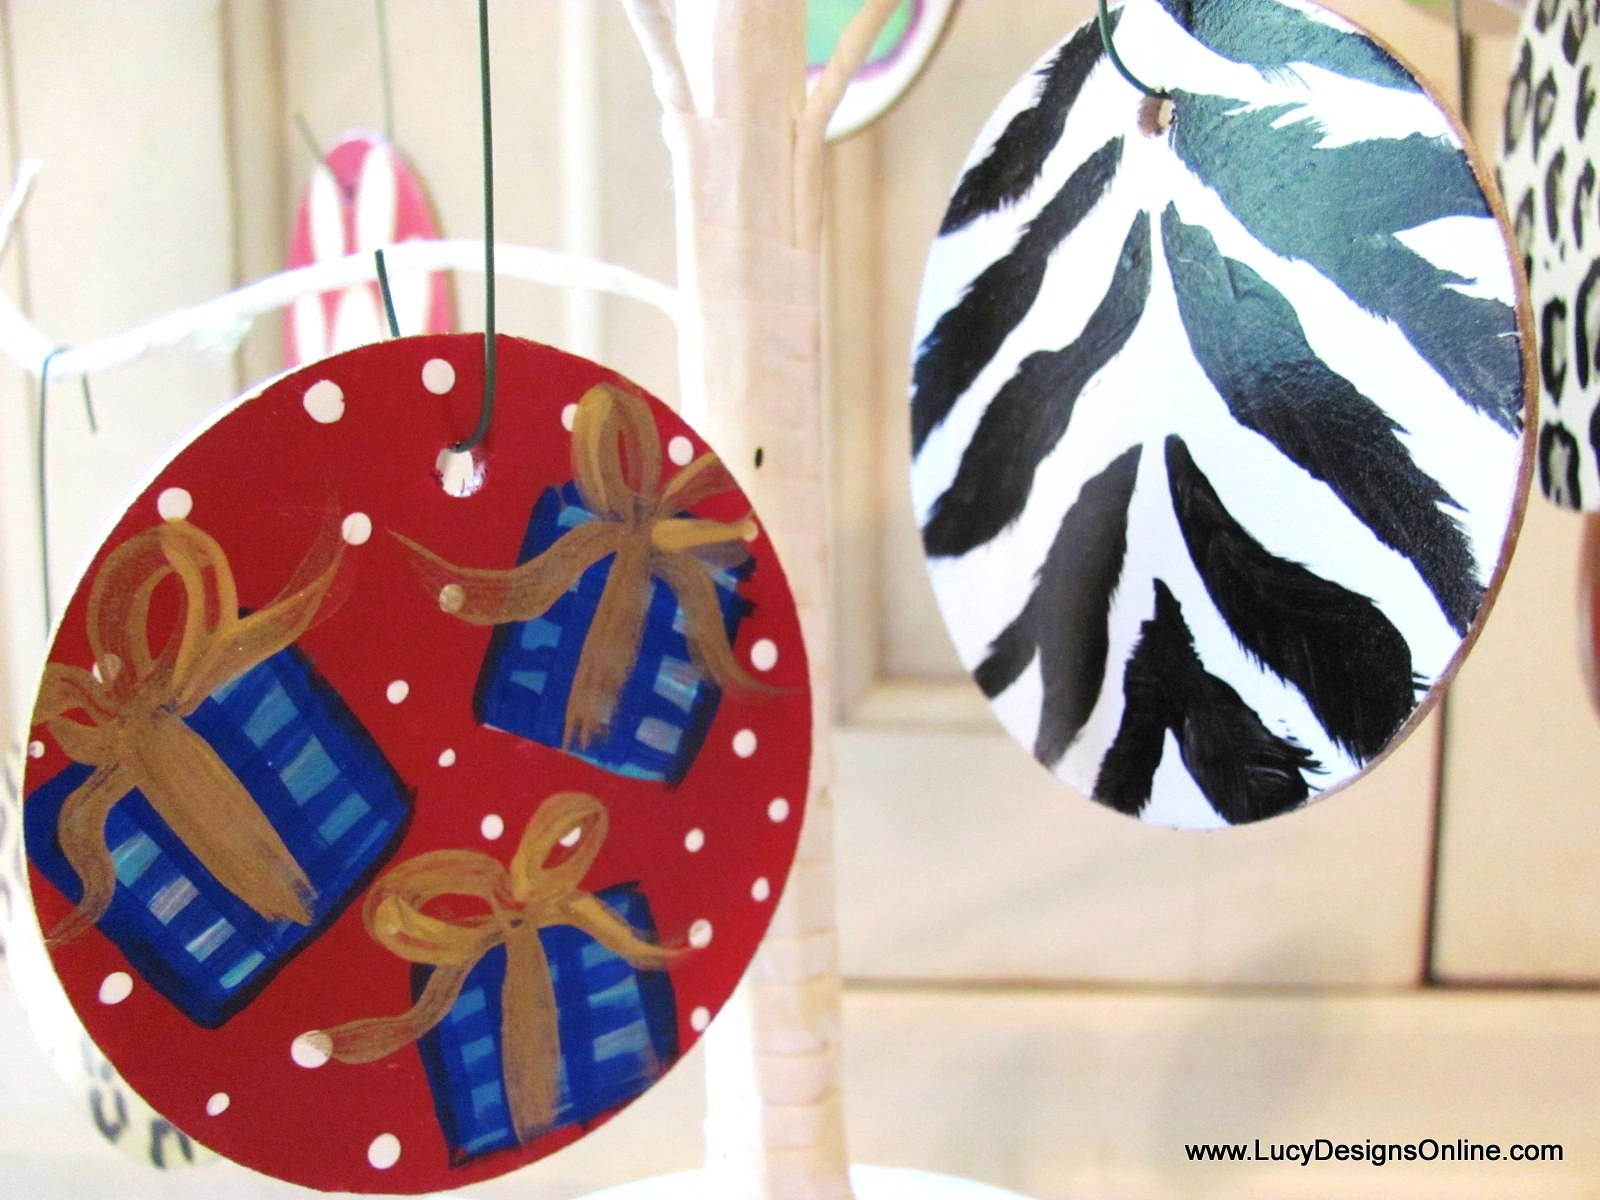 Hand Painted Wooden Christmas Ornaments For Pet Shop With Paw Prints,  Animal Print, Dots And Stripes